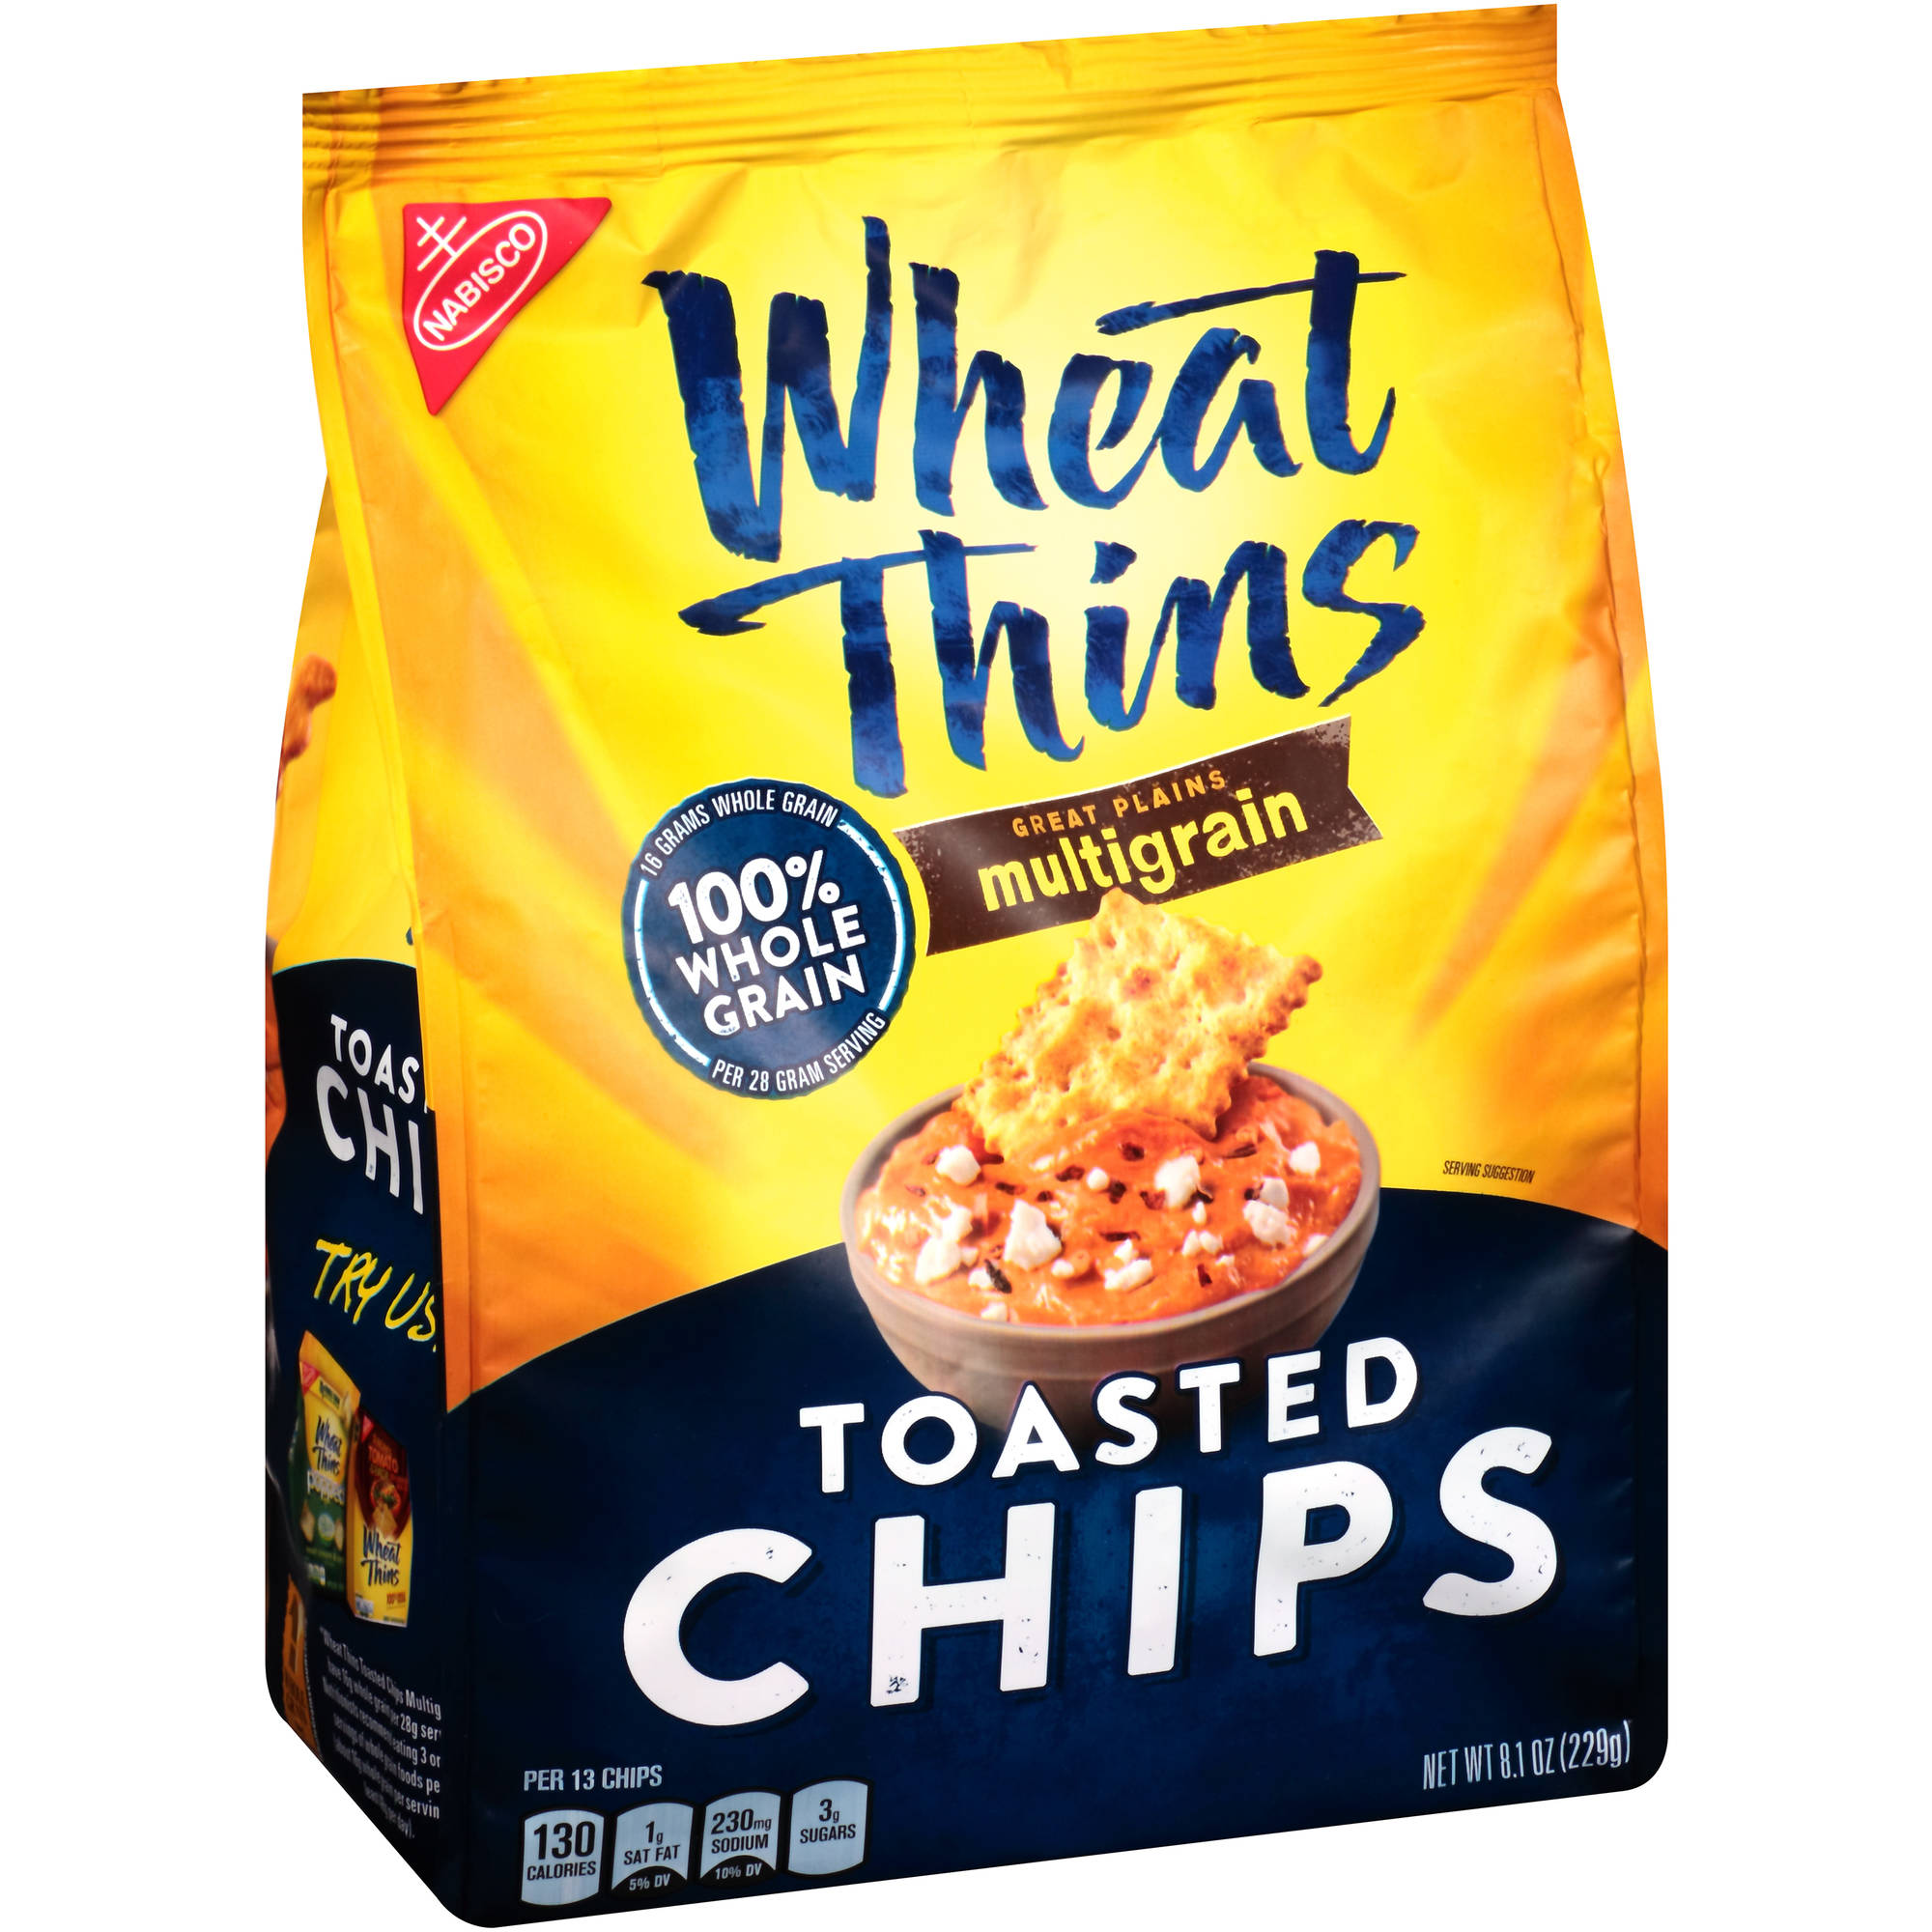 Nabisco Wheat Thins Great Plains Multigrain Toasted Chips, 8.1 oz